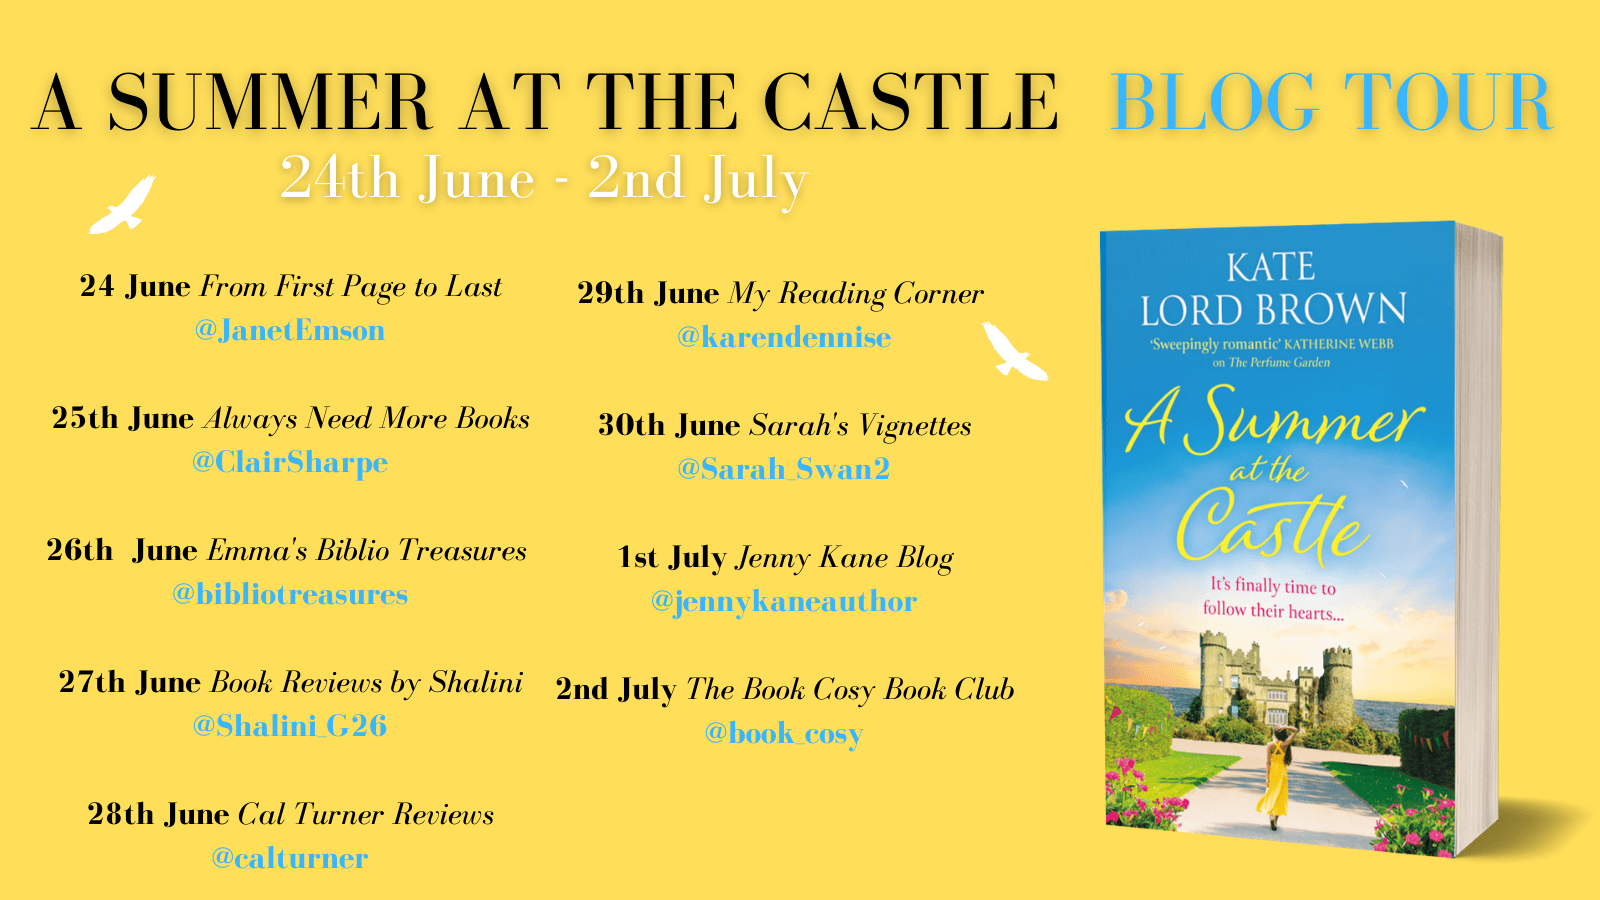 A Summer At the Castle – Kate Lord Brown